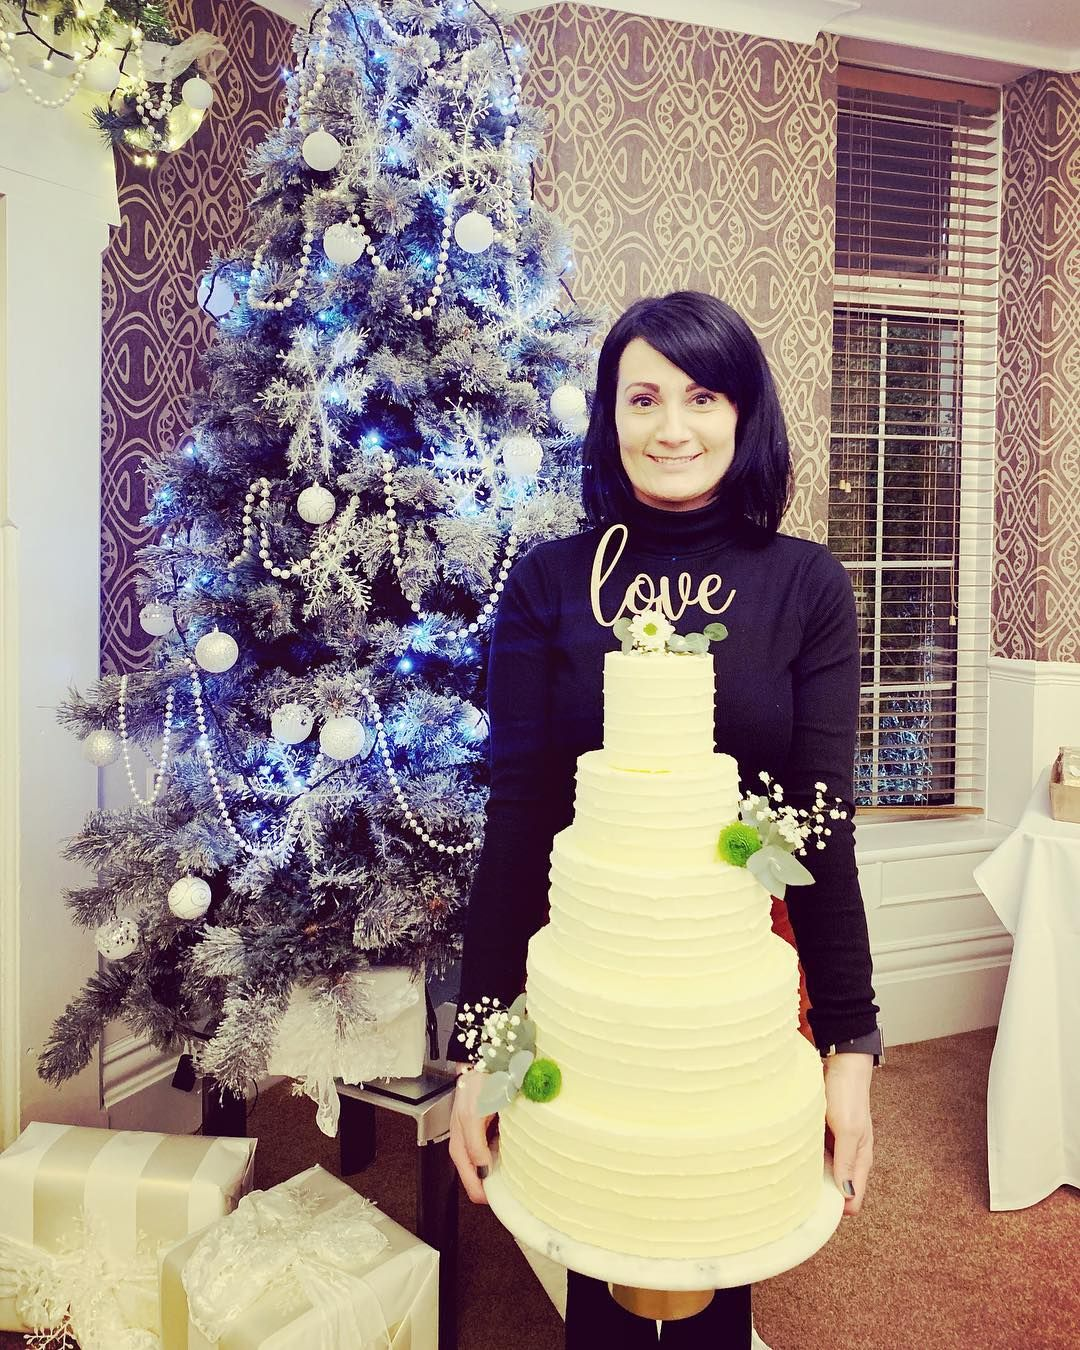 Image may contain: Great British Bake Off 2019, Michelle Evans-Fecci, Michelle, cast, contestants, lineup, Instagram, GBBO, Bake Off, 2019, start date, Channel 4, Christmas Tree, Ornament, Wedding Cake, Tree, Plant, Cake, Food, Dessert, Human, Person